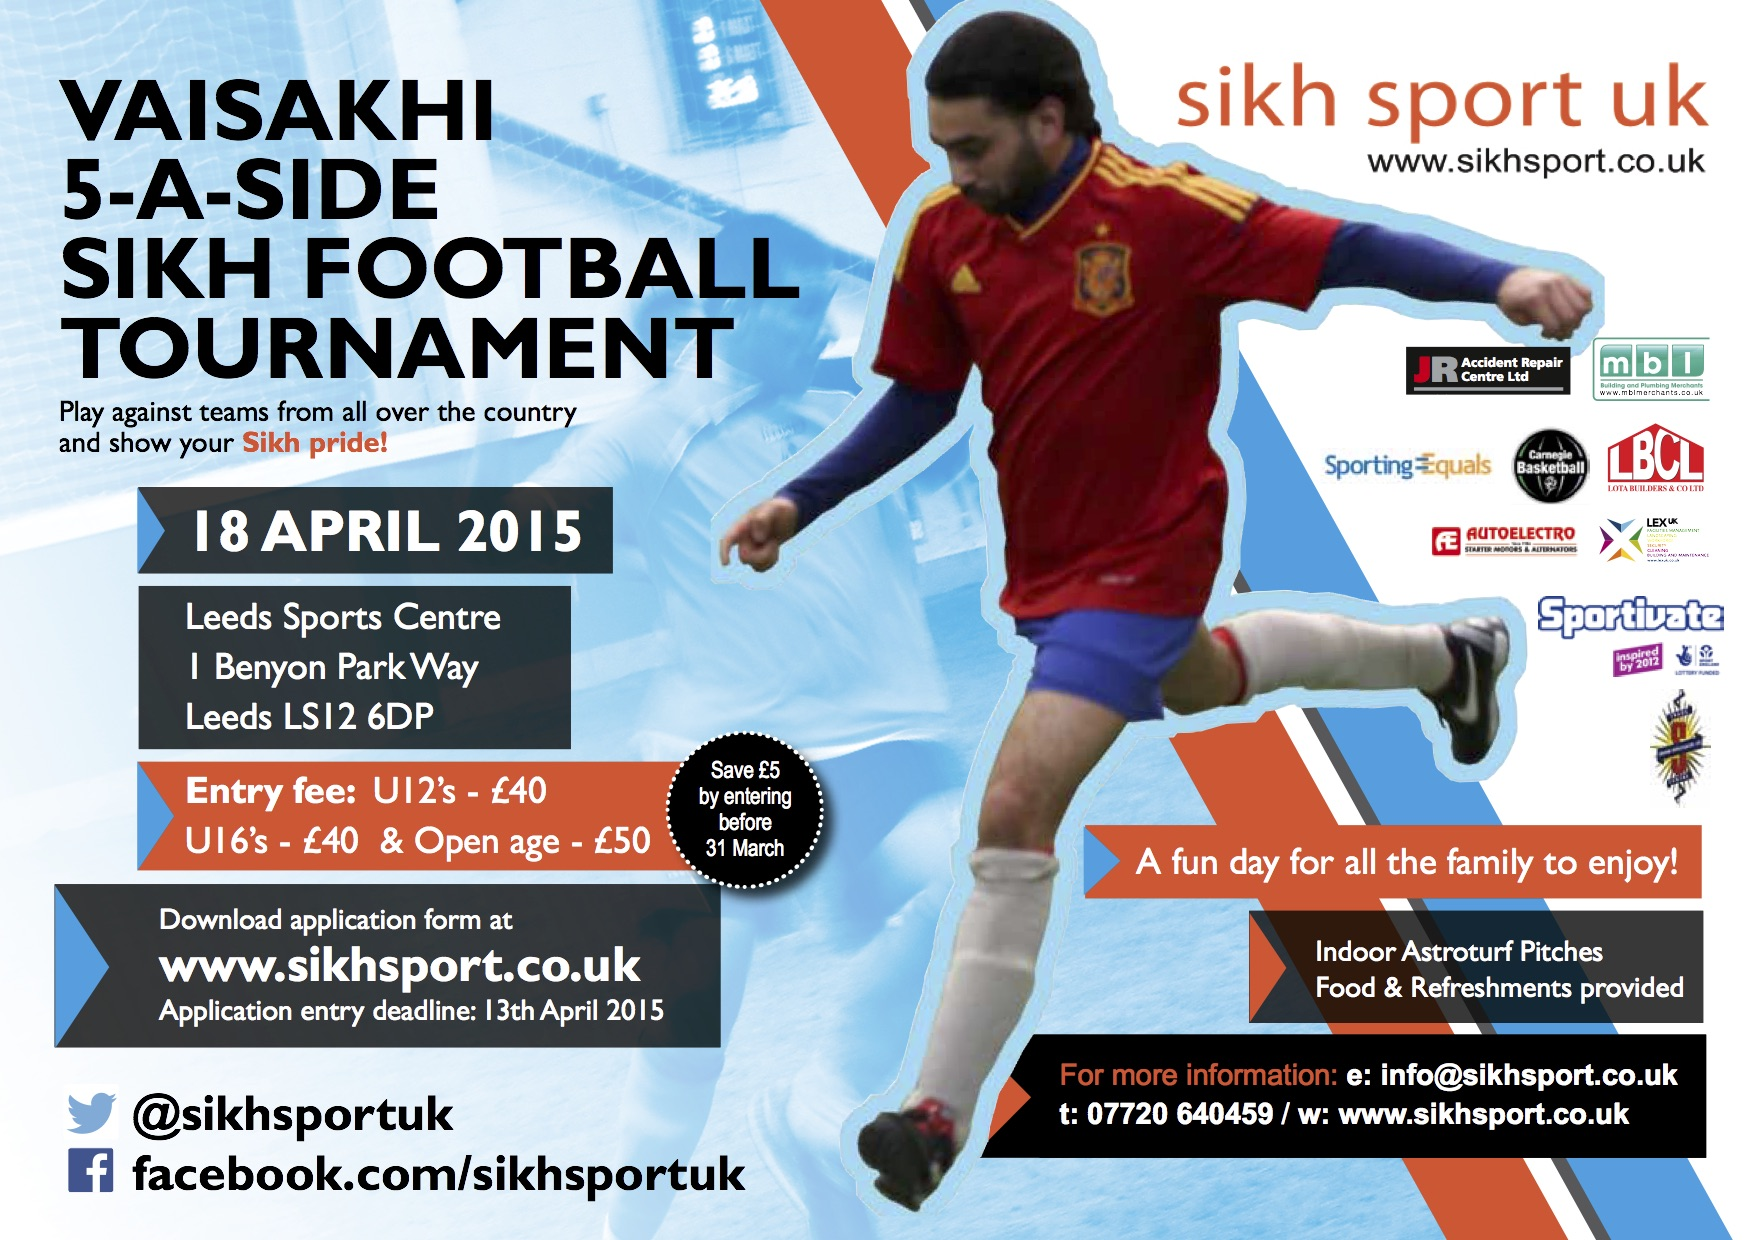 Vaisakhi 2015 Tournament